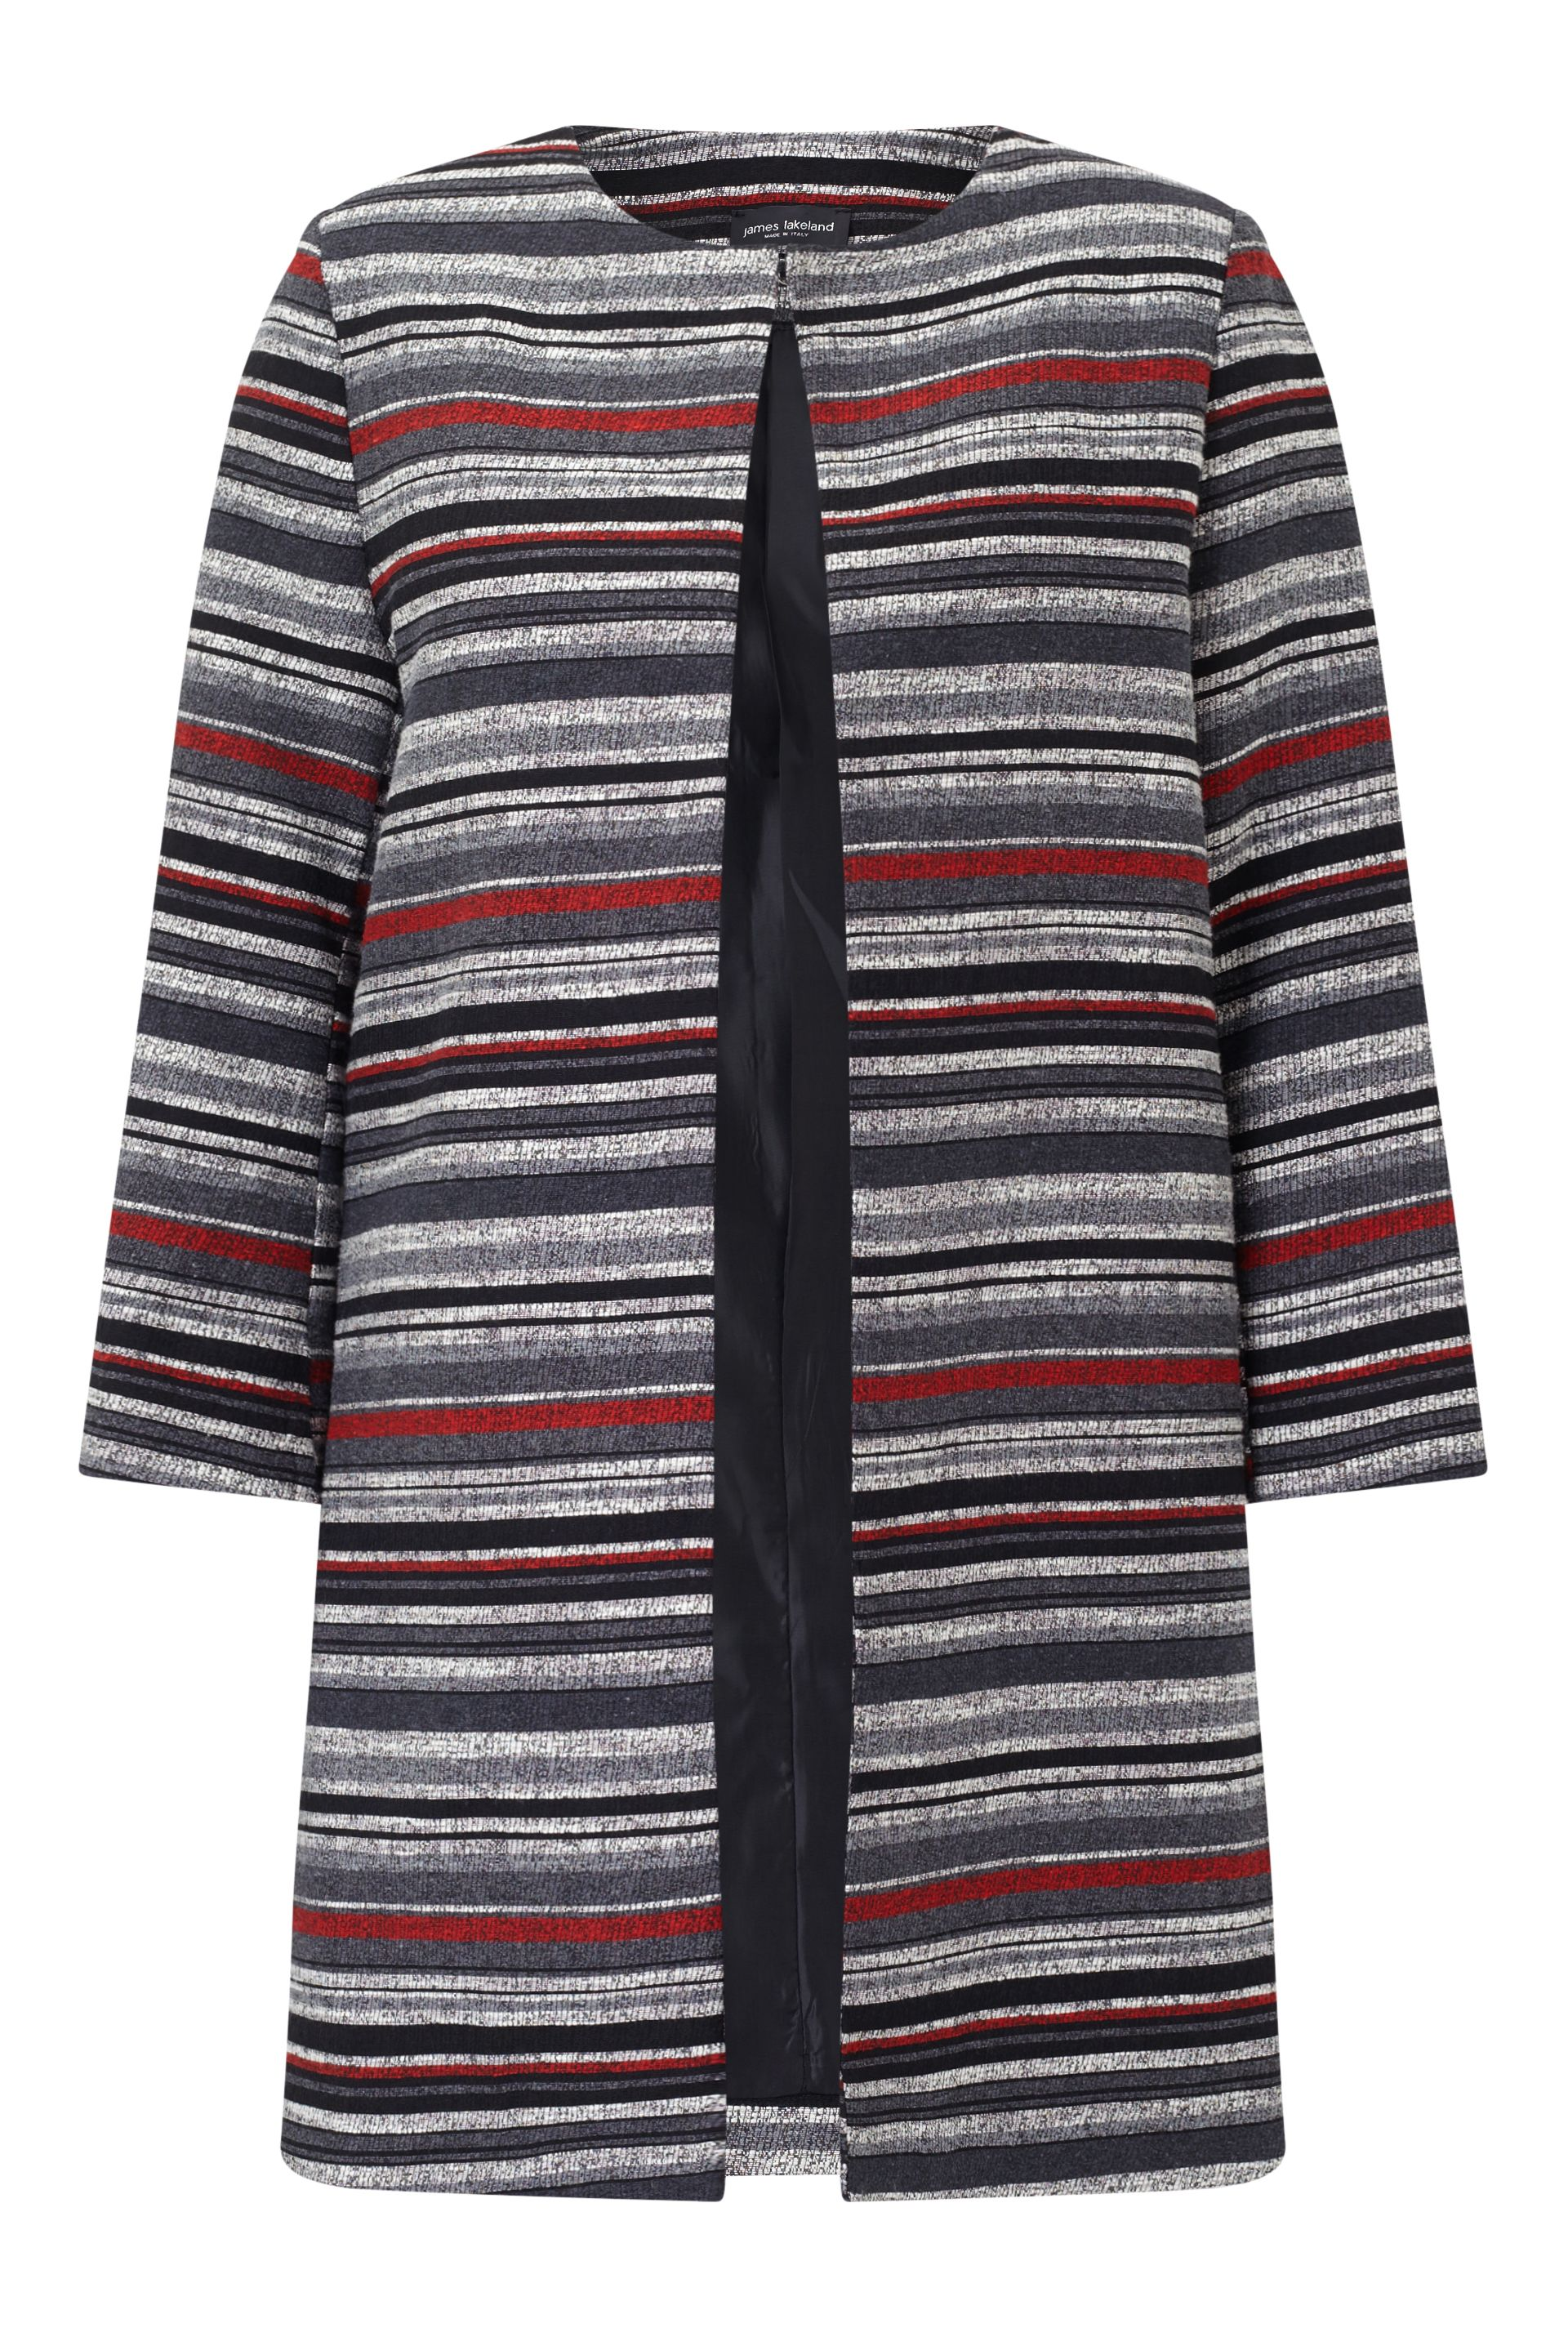 James Lakeland Stripe Jacket, Red